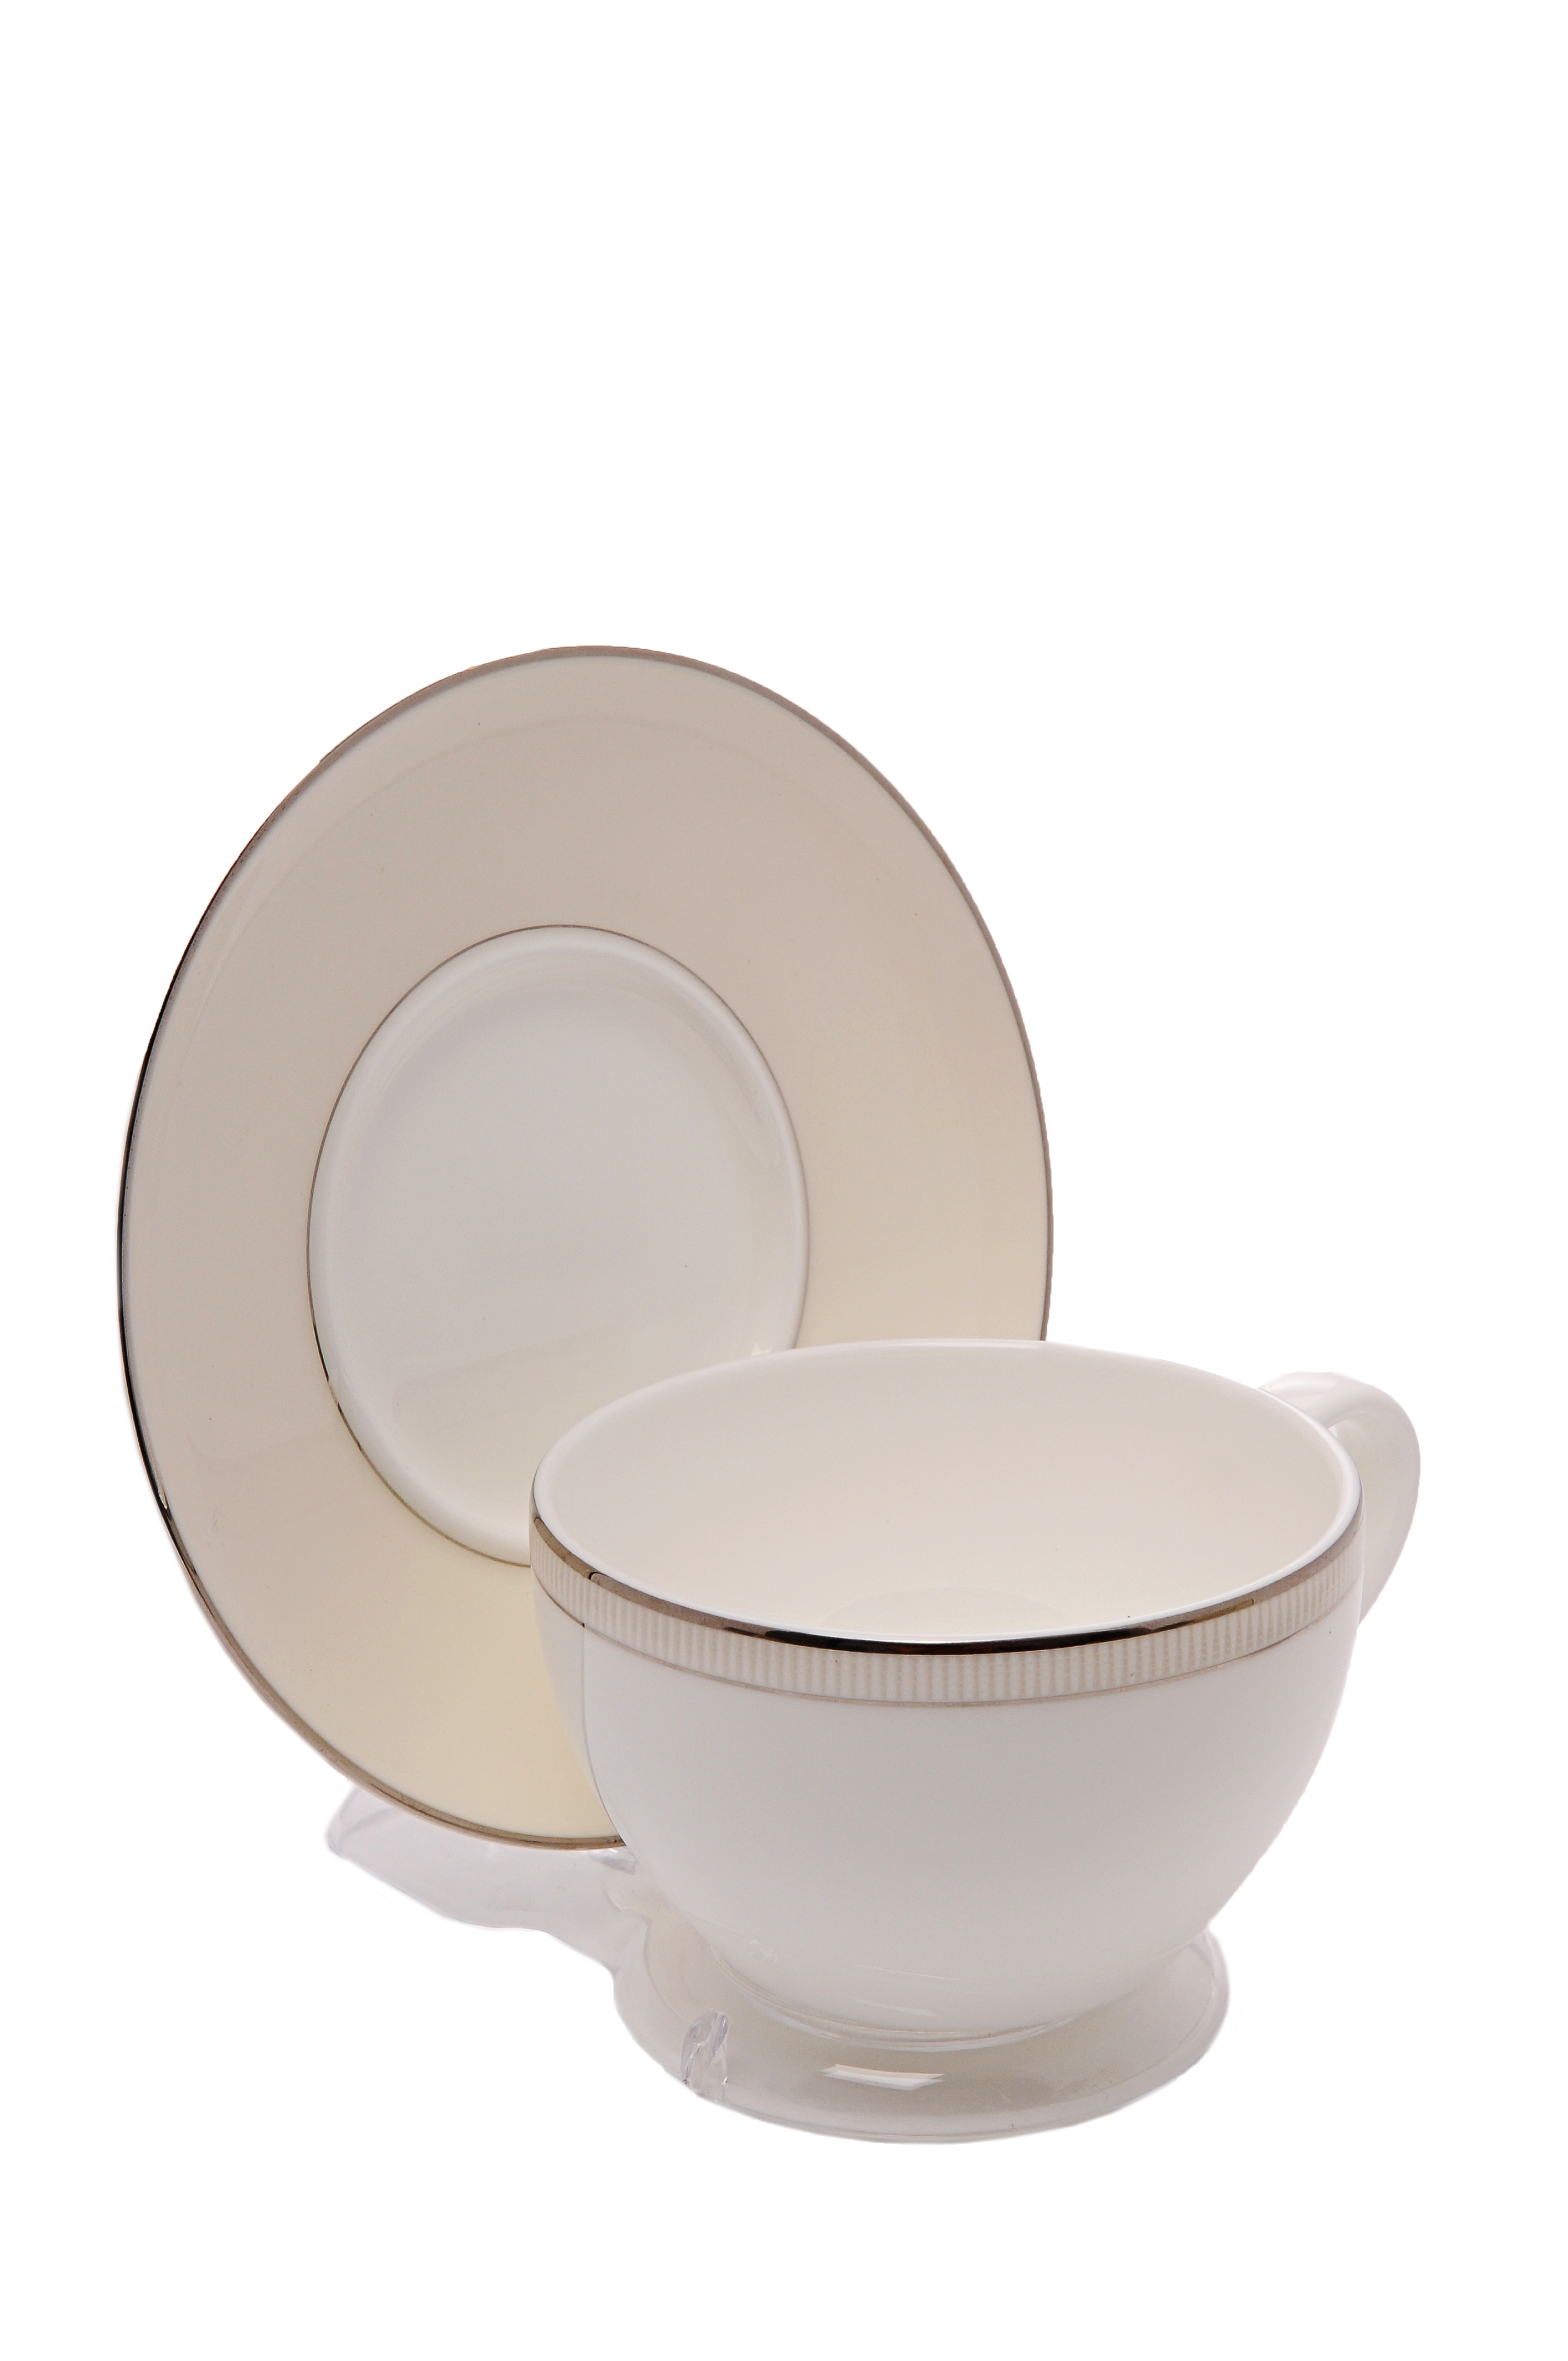 Cup and Saucer Display Stand with Rounded Front Item# 405  sc 1 st  THB Products LLC & Cup and Saucer Display Stand with Rounded Frontu003cbru003eu003cbru003eItem# 405